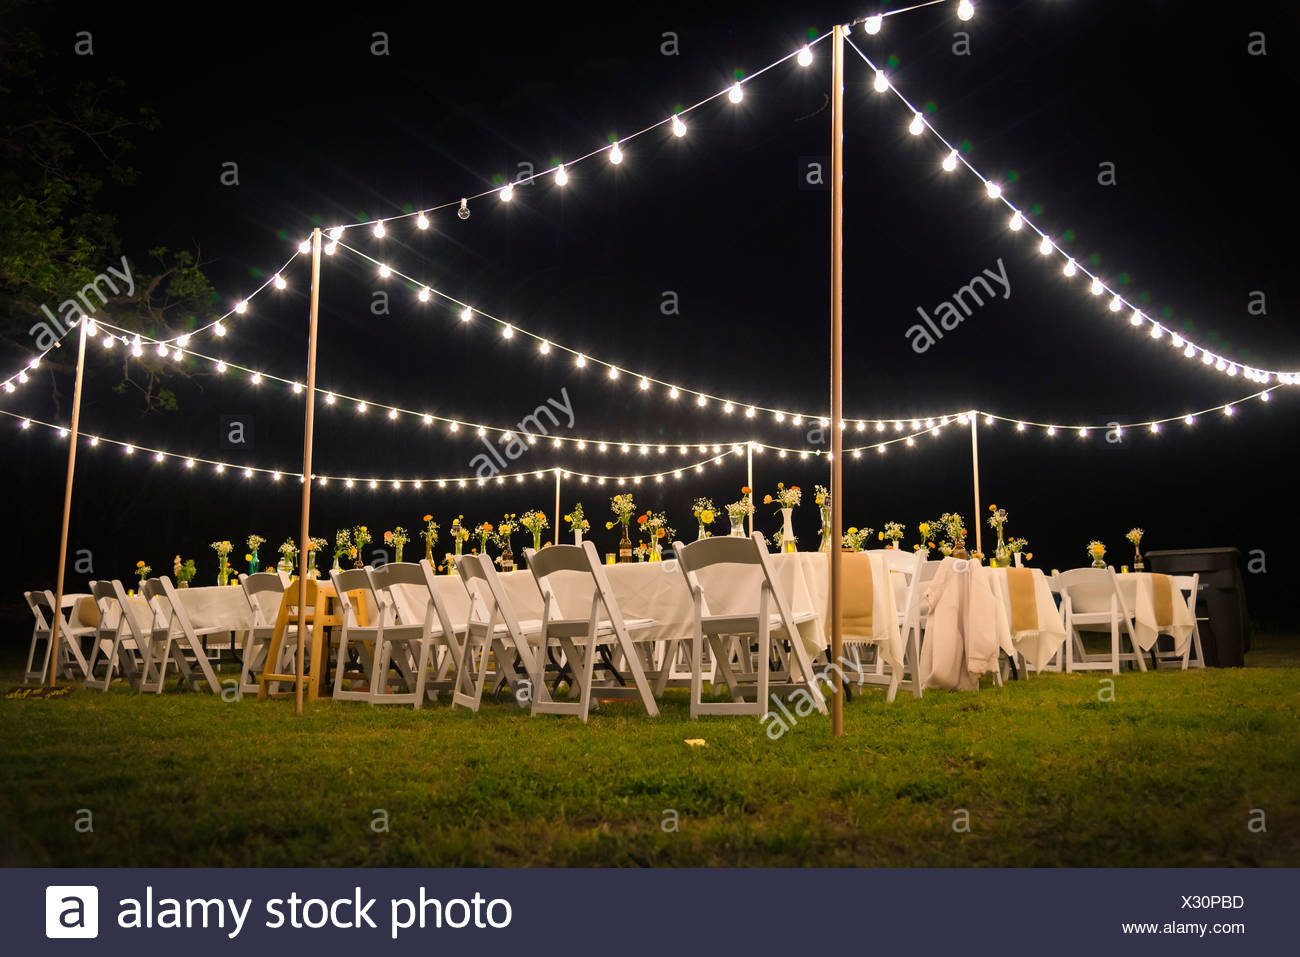 USA, Texas, Outdoor wedding reception with party lights at night ...